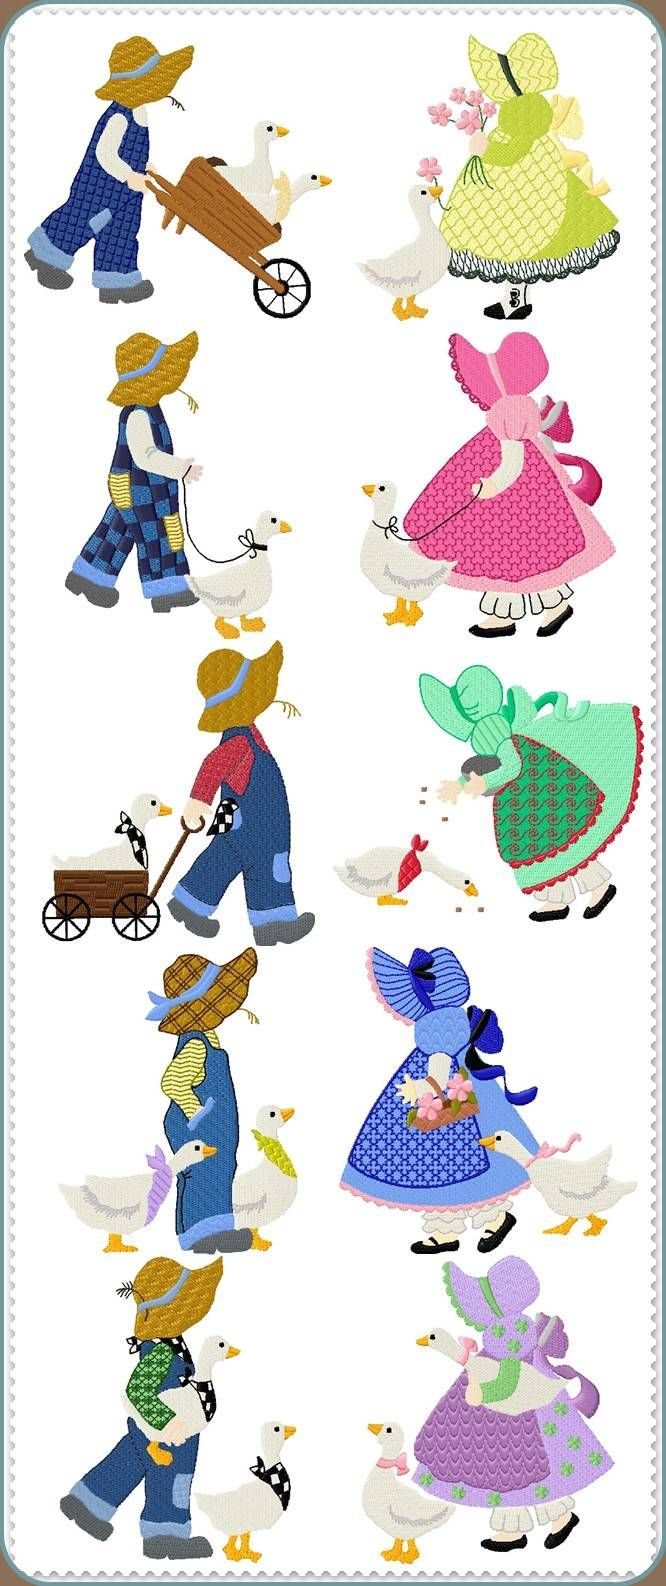 Free Applique Patterns | FREE EMBROIDERY SUNBONNET SUE DESIGNS - Embroidery Designs